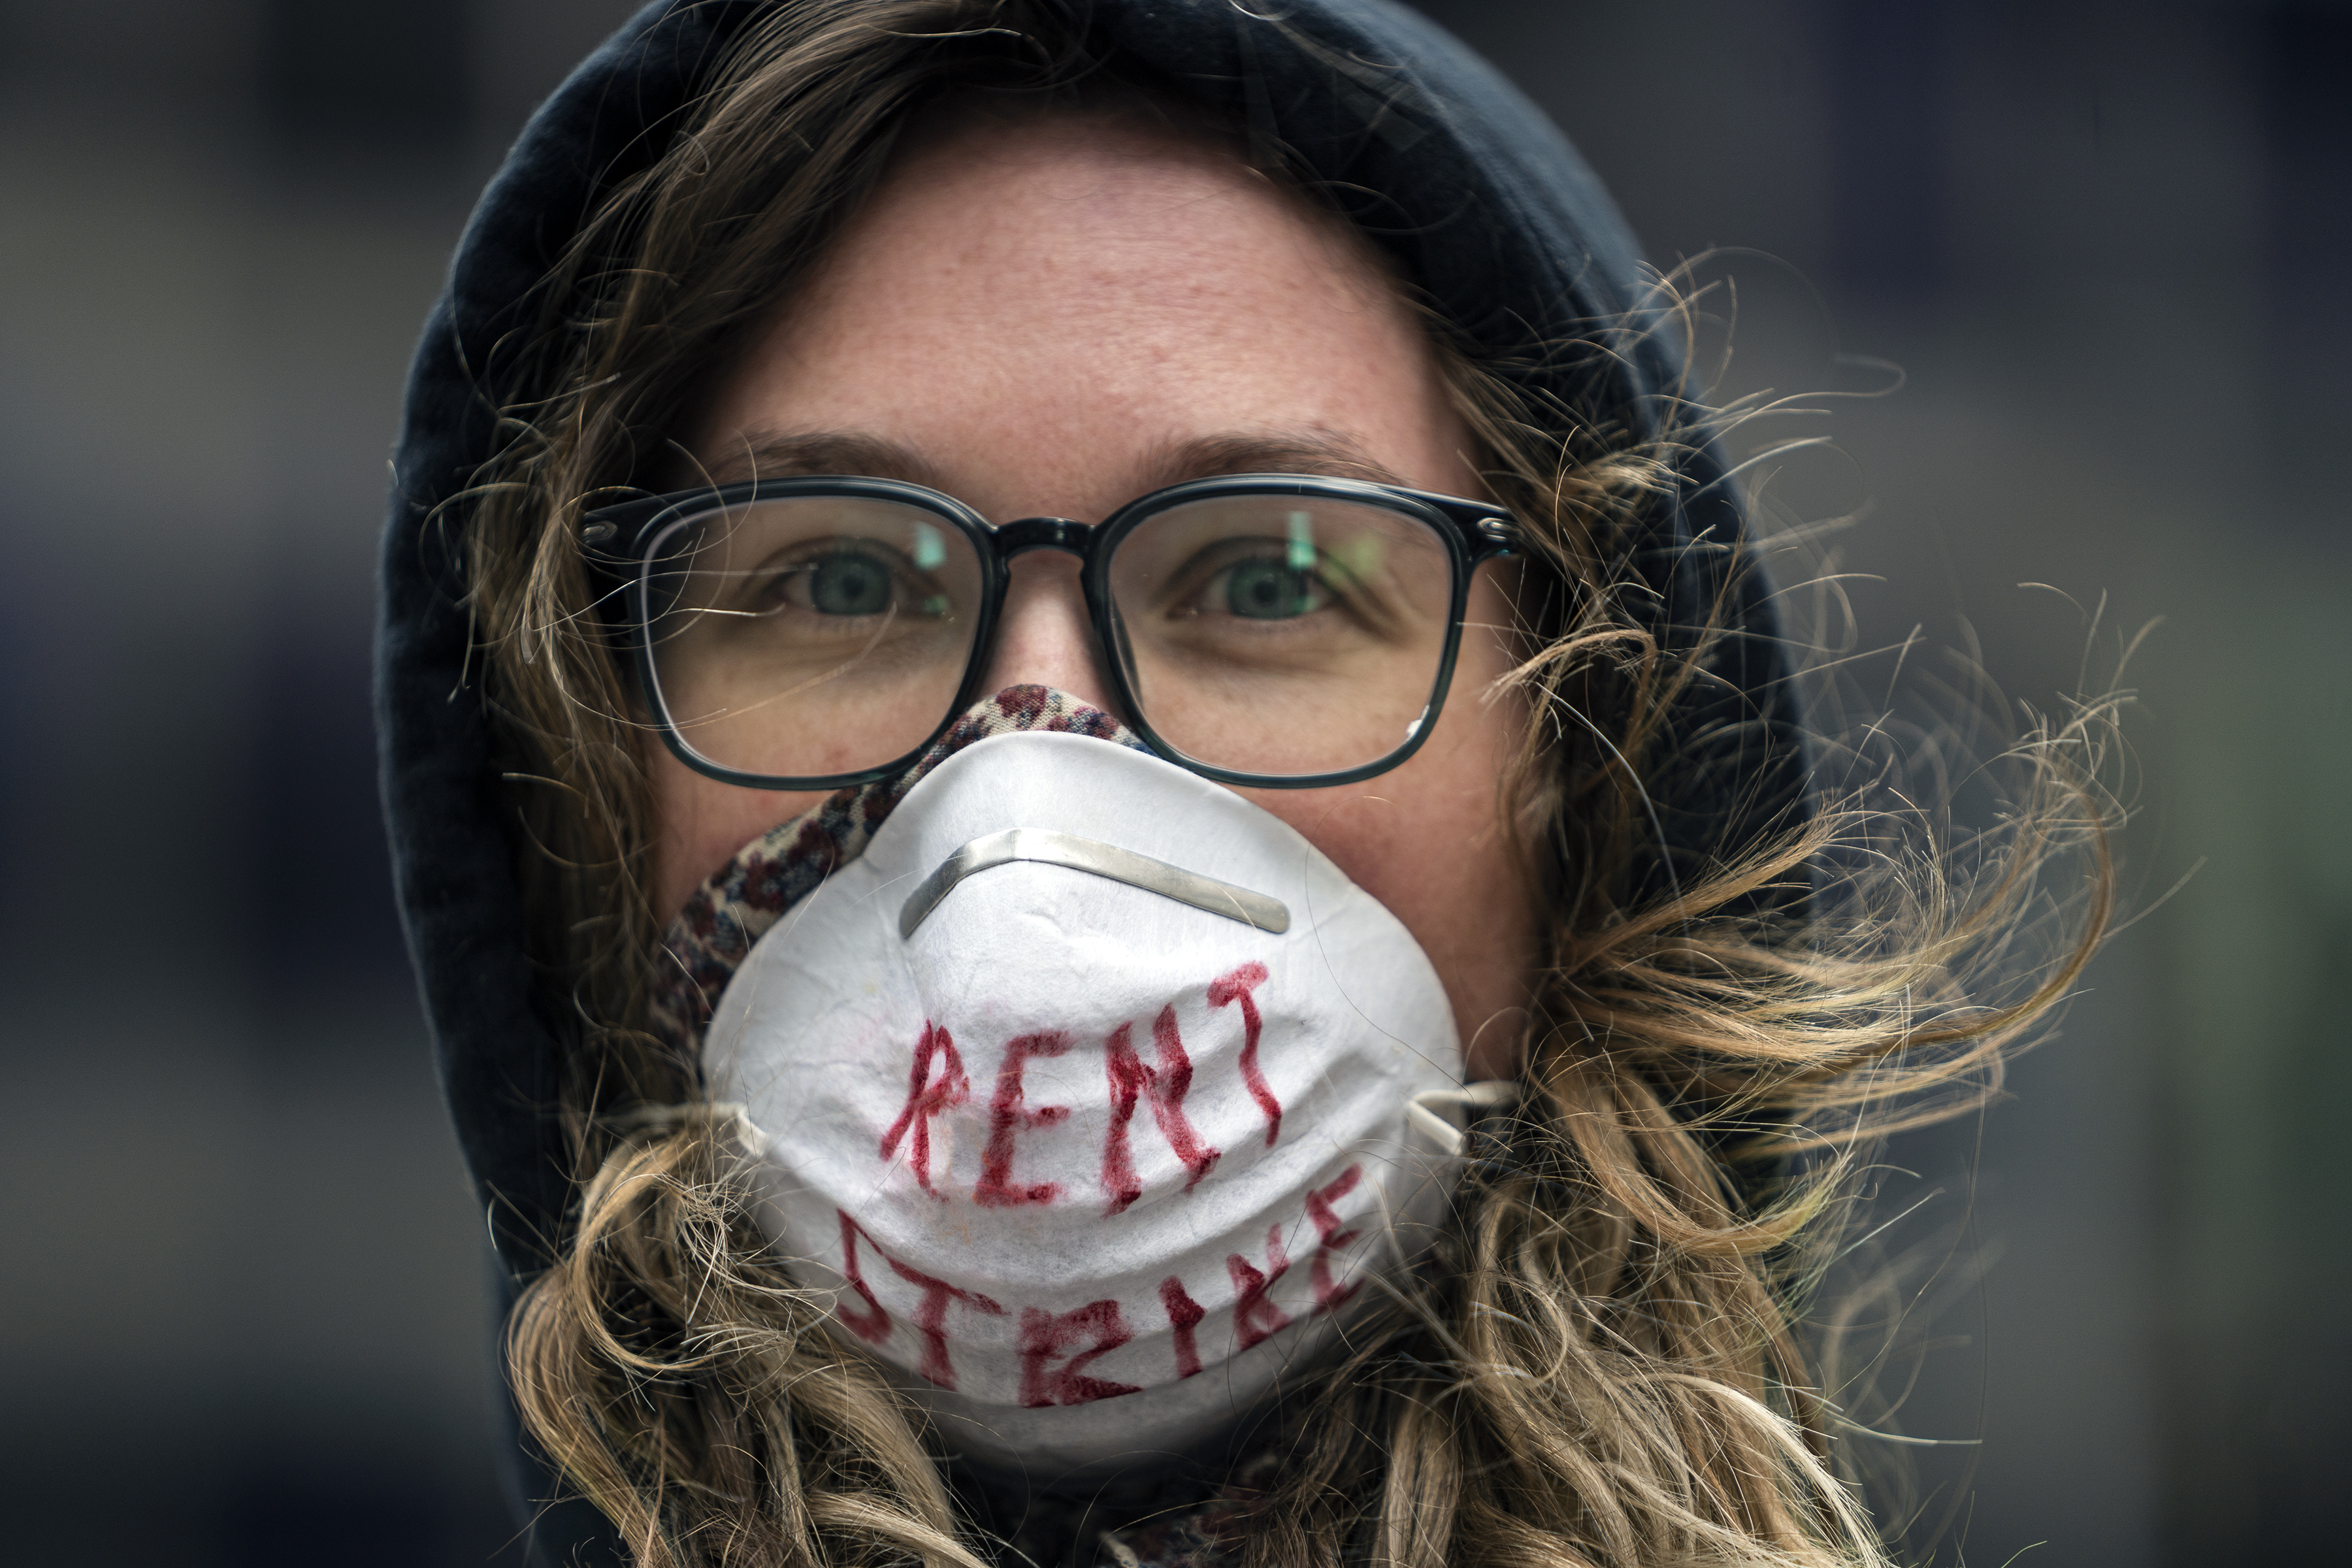 Karissa Stotts takes part in a protest calling for relief for renters and homeowners in Minneapolis, Minn., on April 8, 2020.